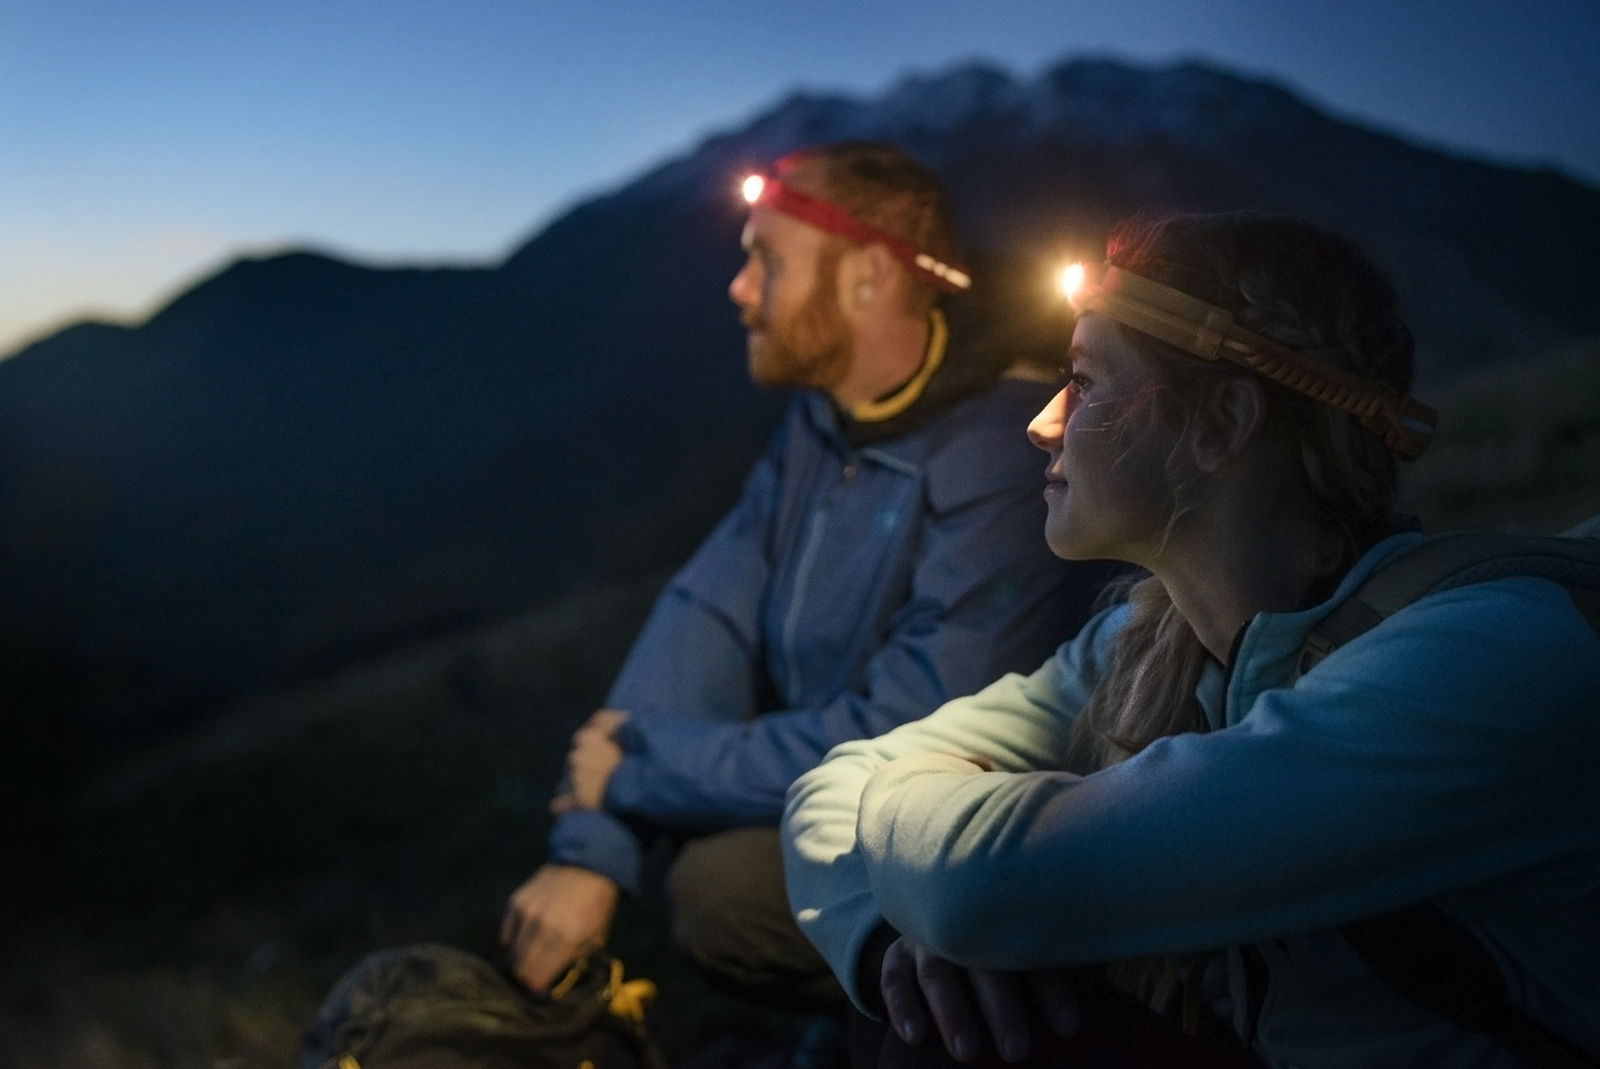 HeadLamp_lifestyle_2.jpg